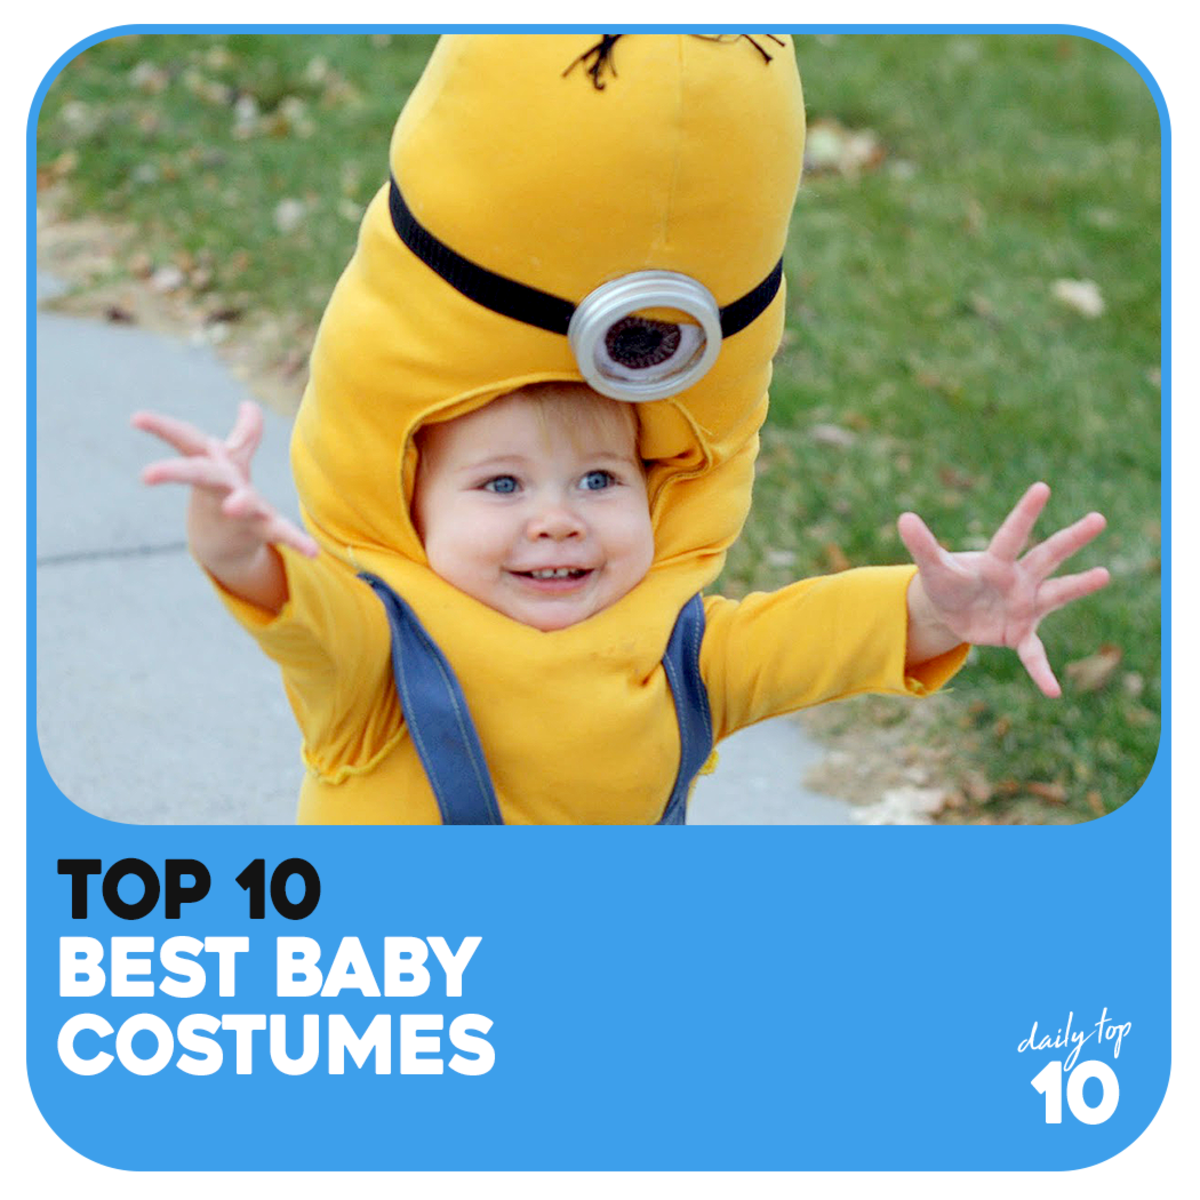 Top 10 Most Creative Baby Costumes for Halloween, Christmas, Birthdays, and Other Special Occasions!